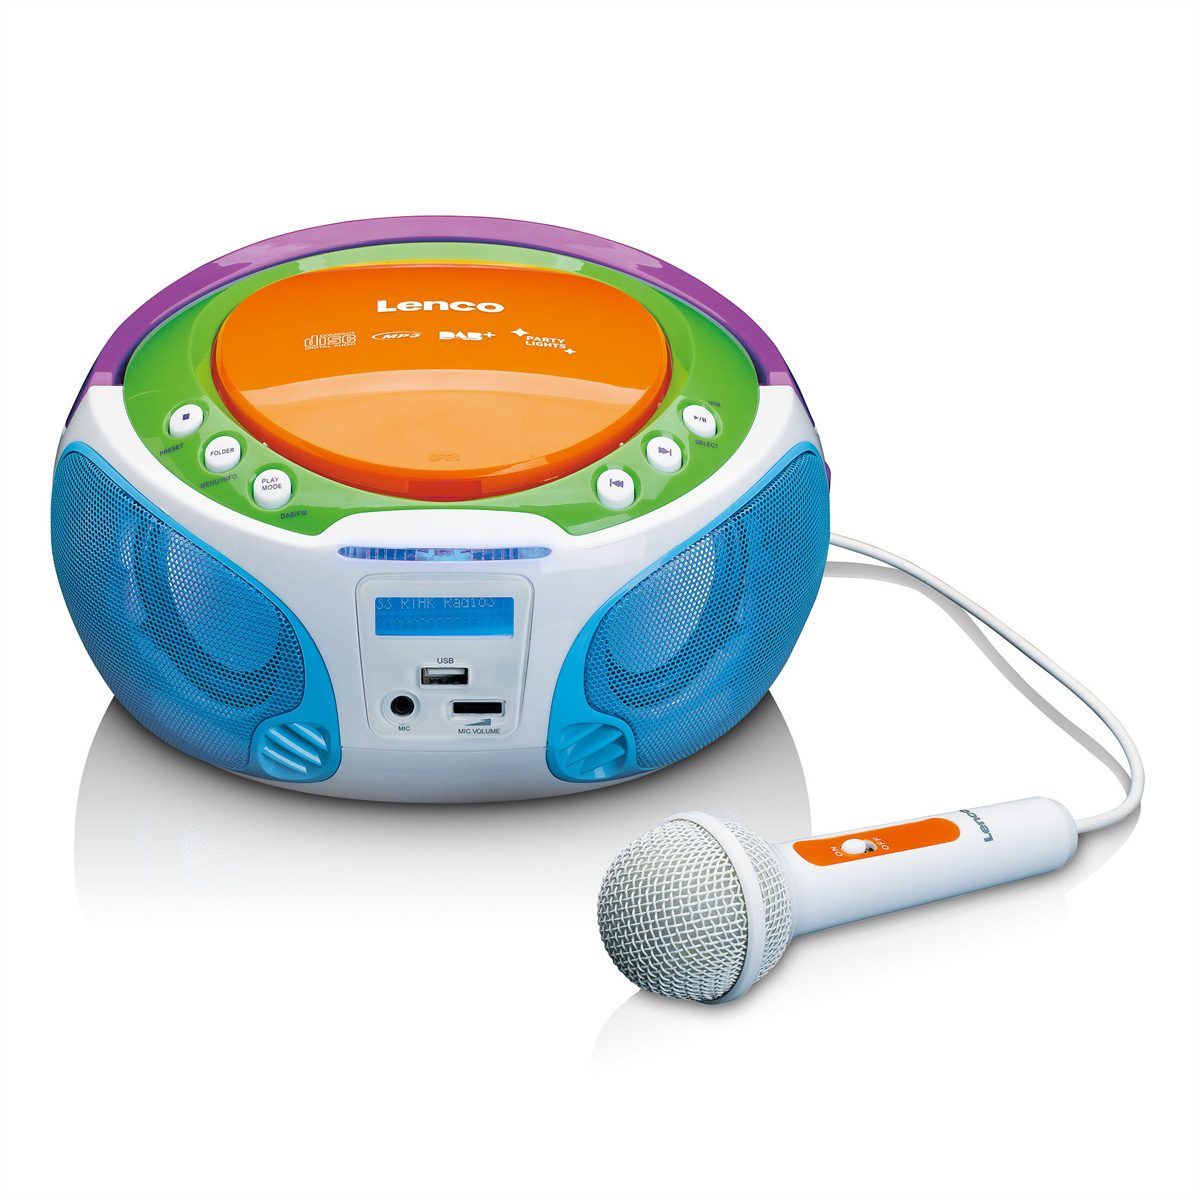 Lenco SCD-651 Kids portabler DAB+ Radio, FM, CD, MP3 & USB, LCD Display